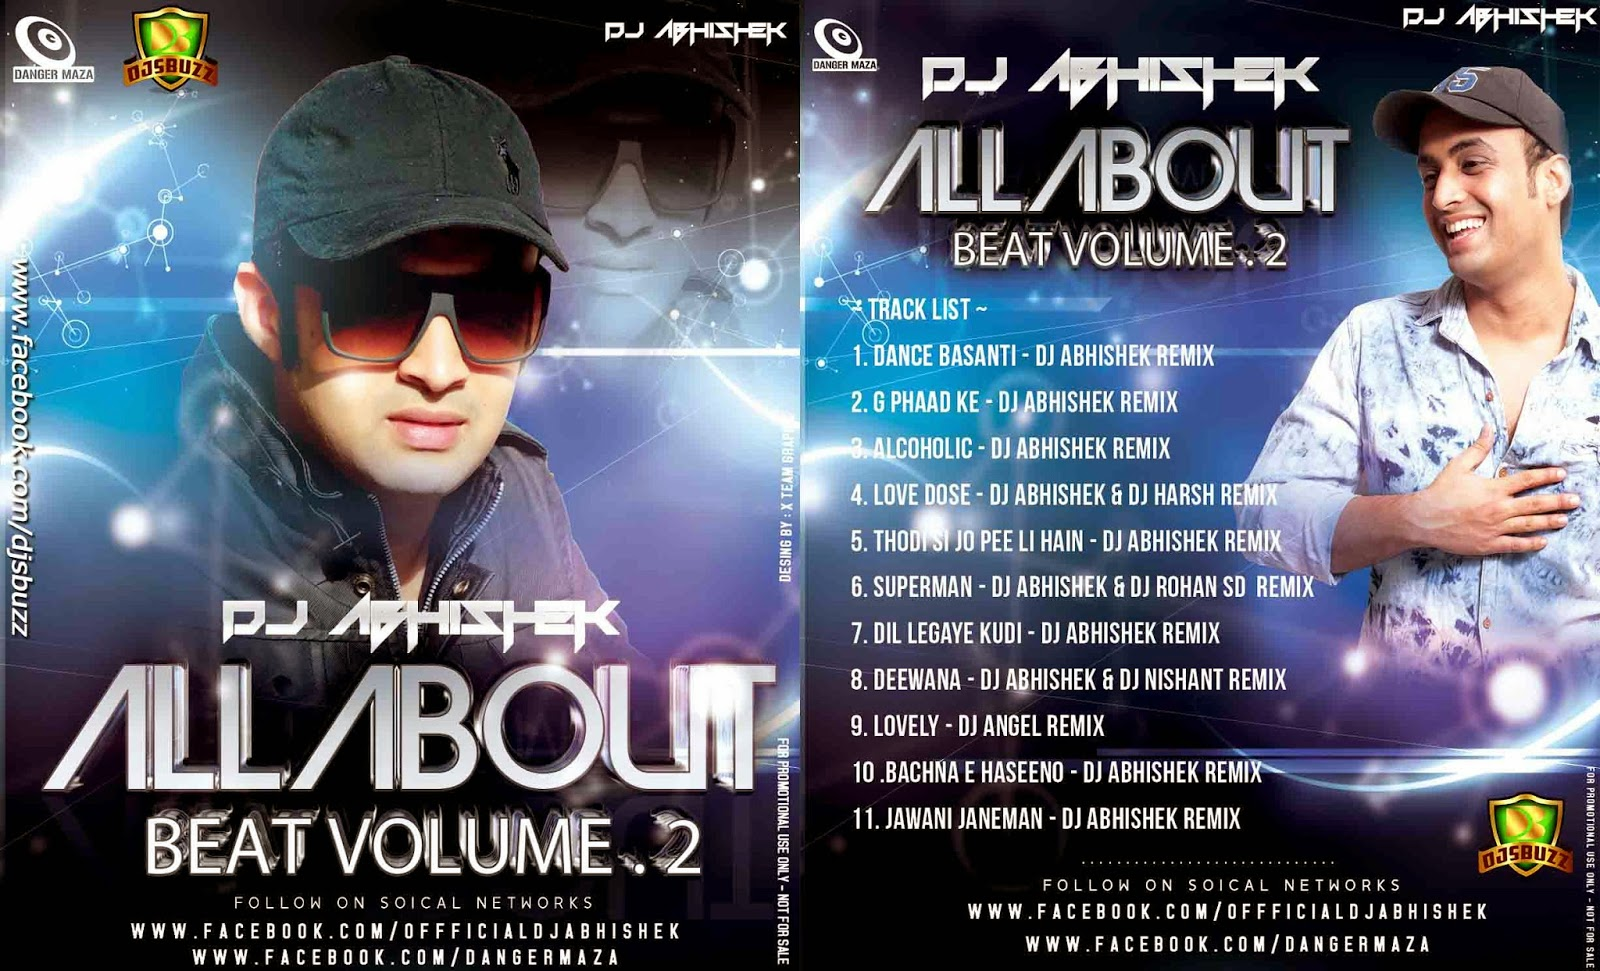 ALL ABOUT BEAT VOL.2